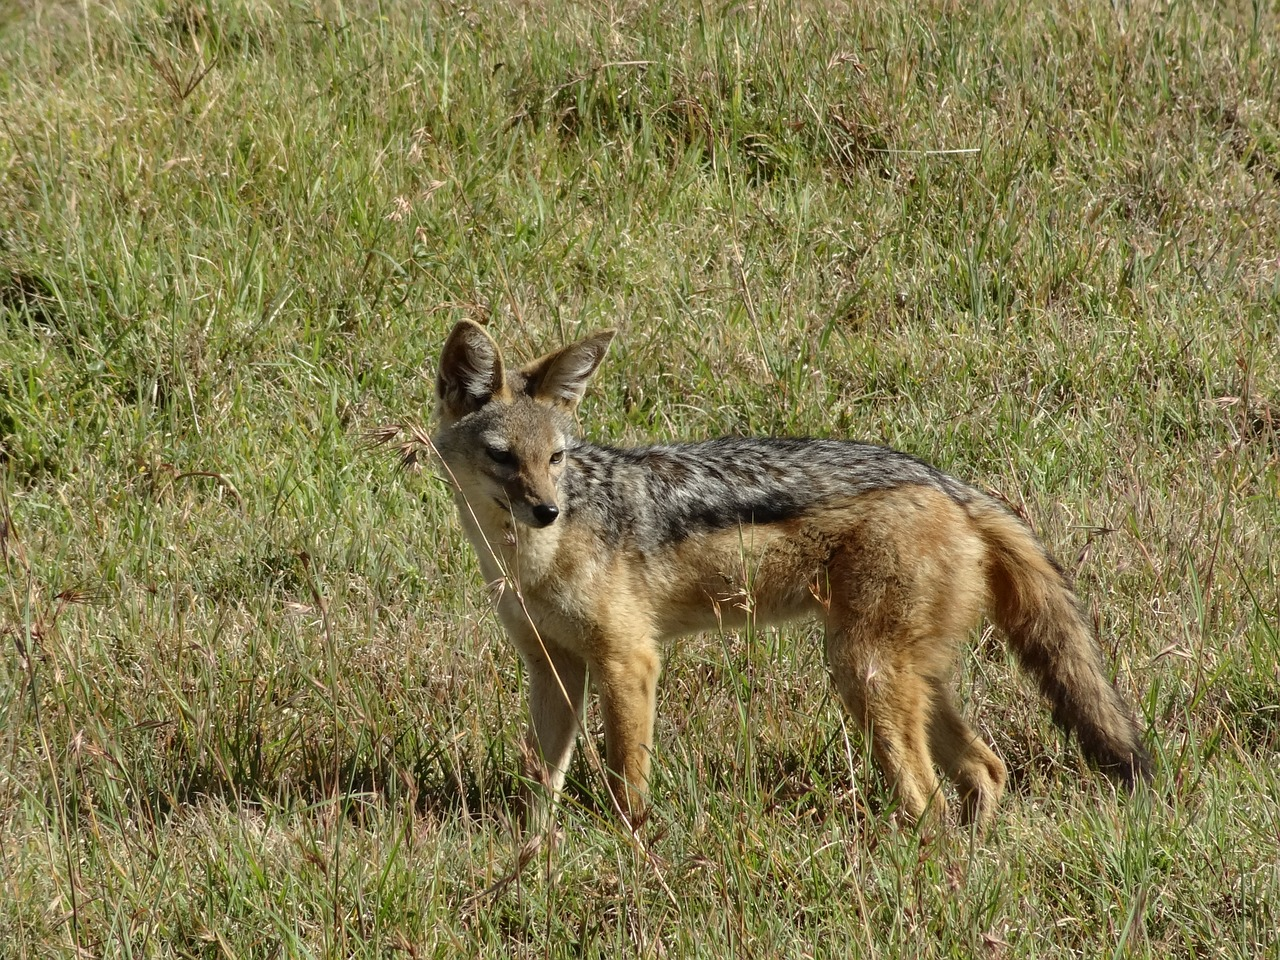 jackal savannah hunting free photo